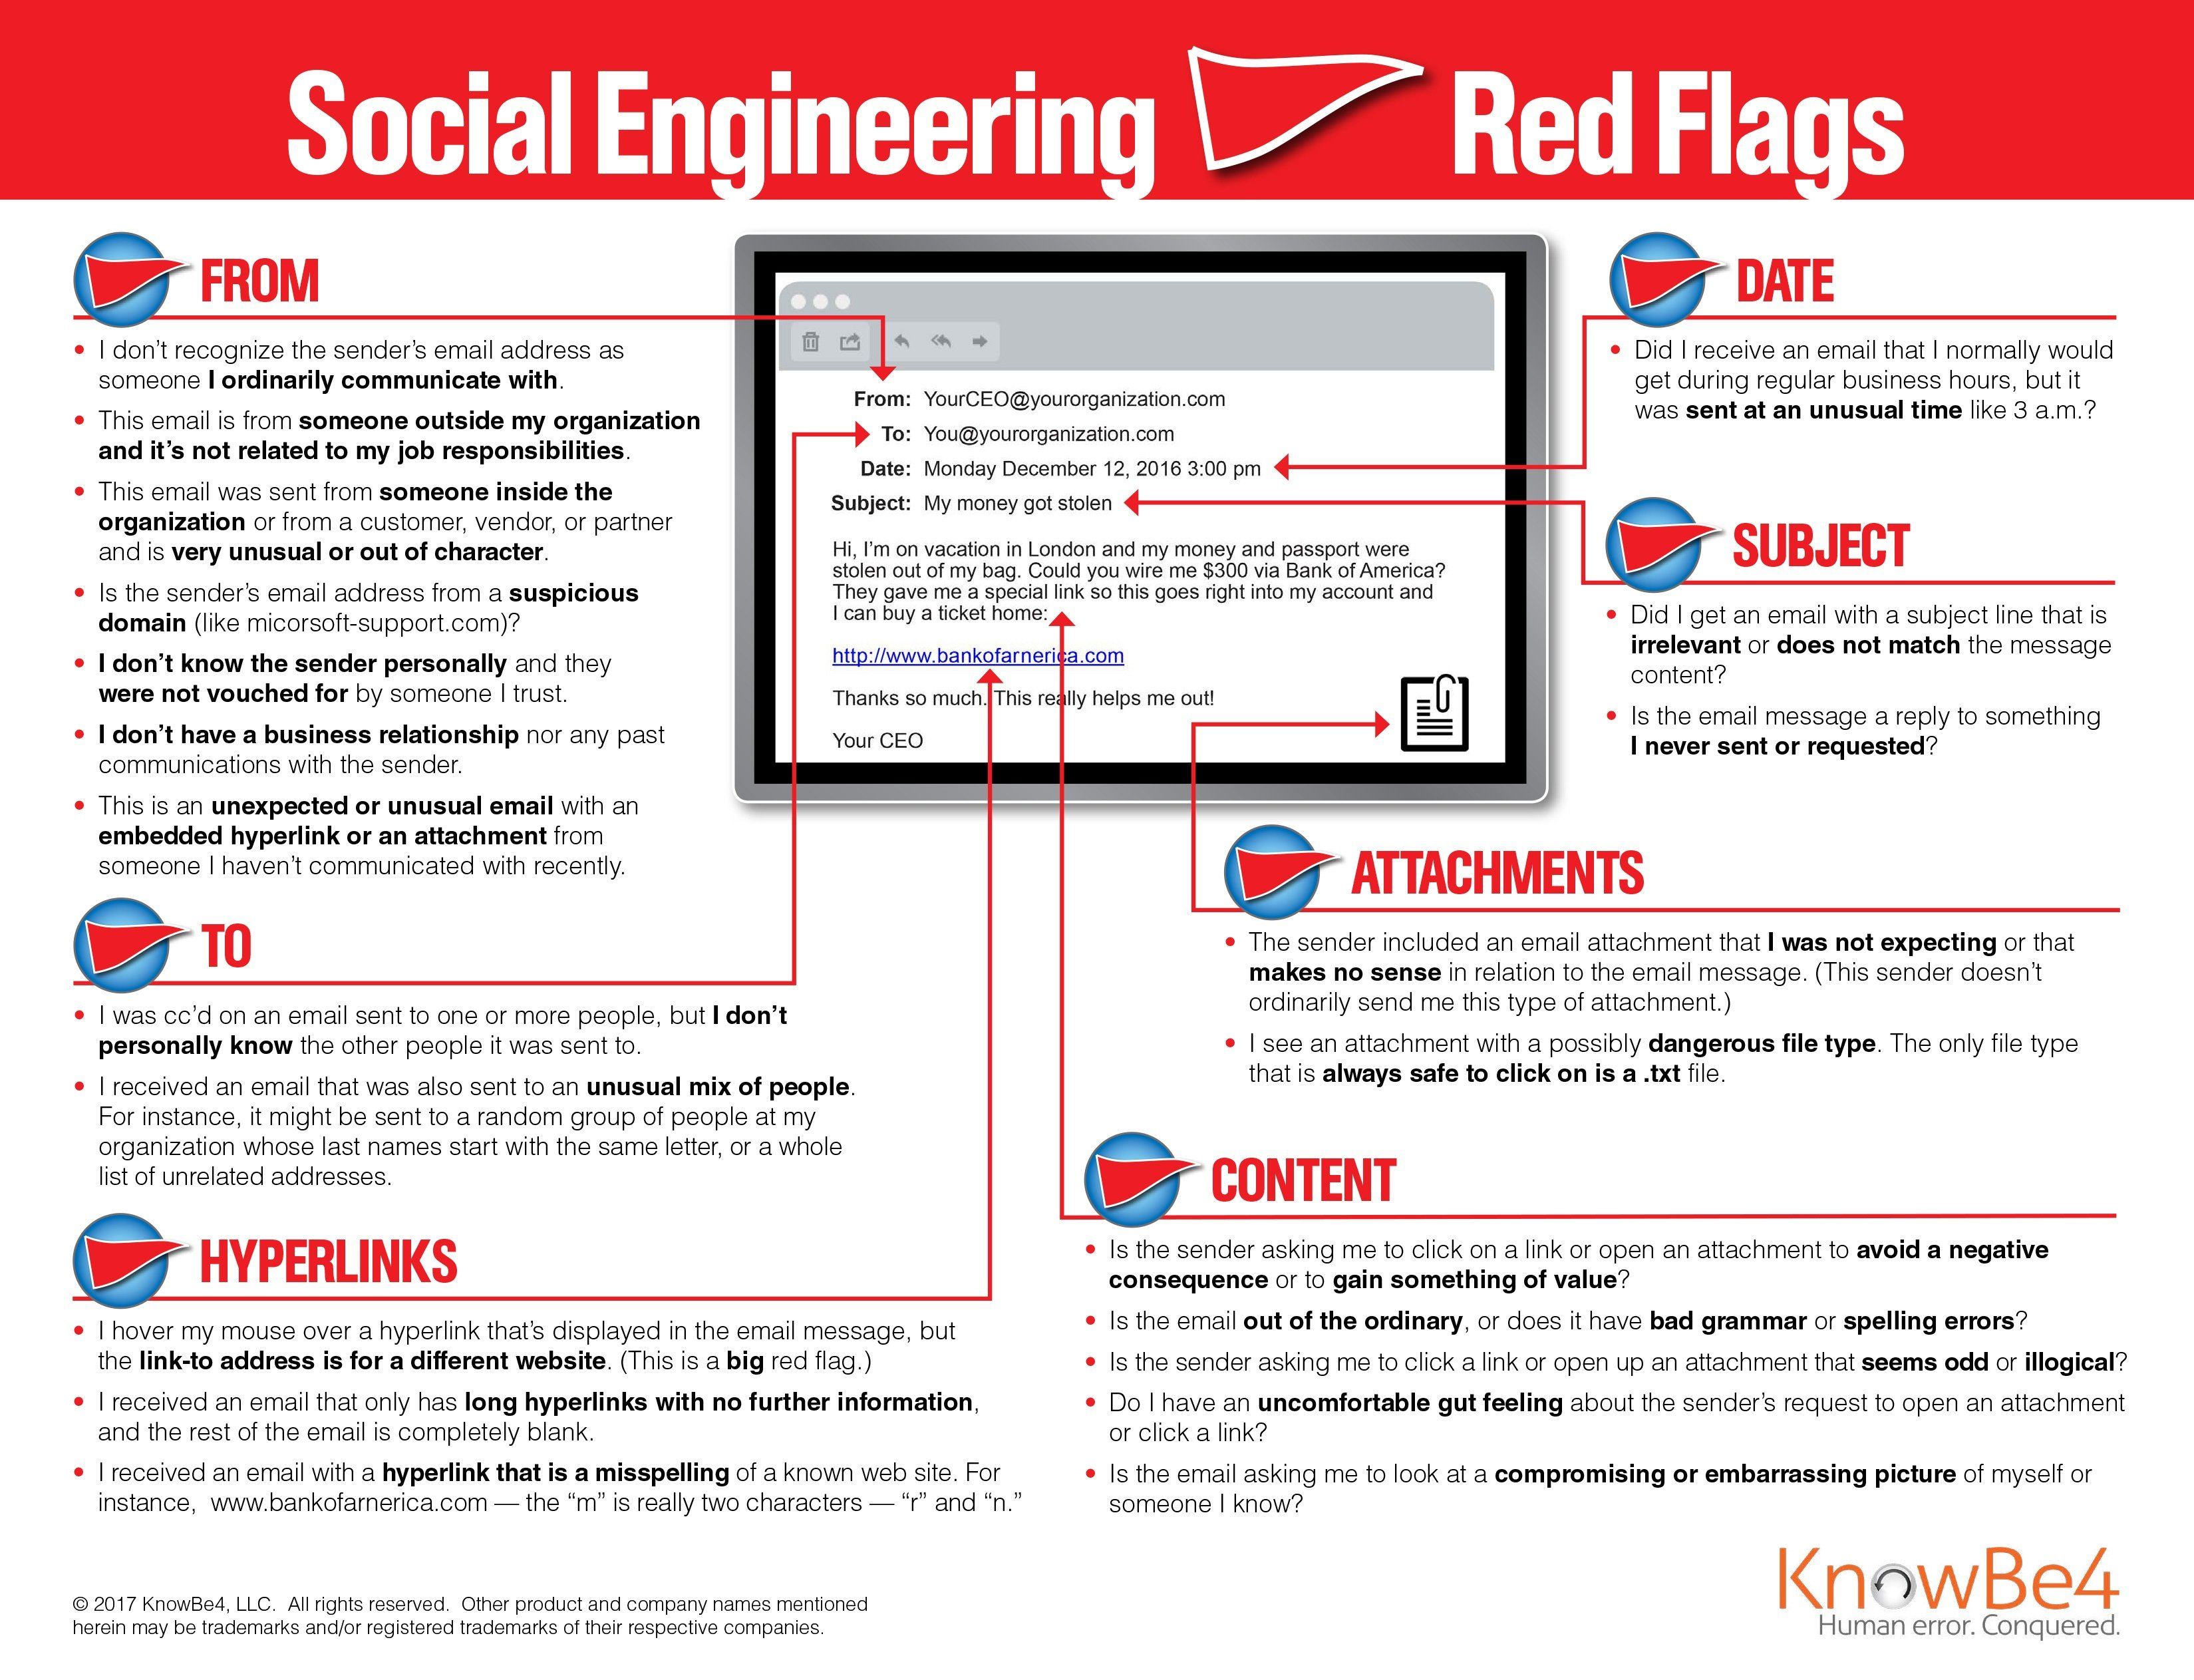 KnowBe4 Red Flags